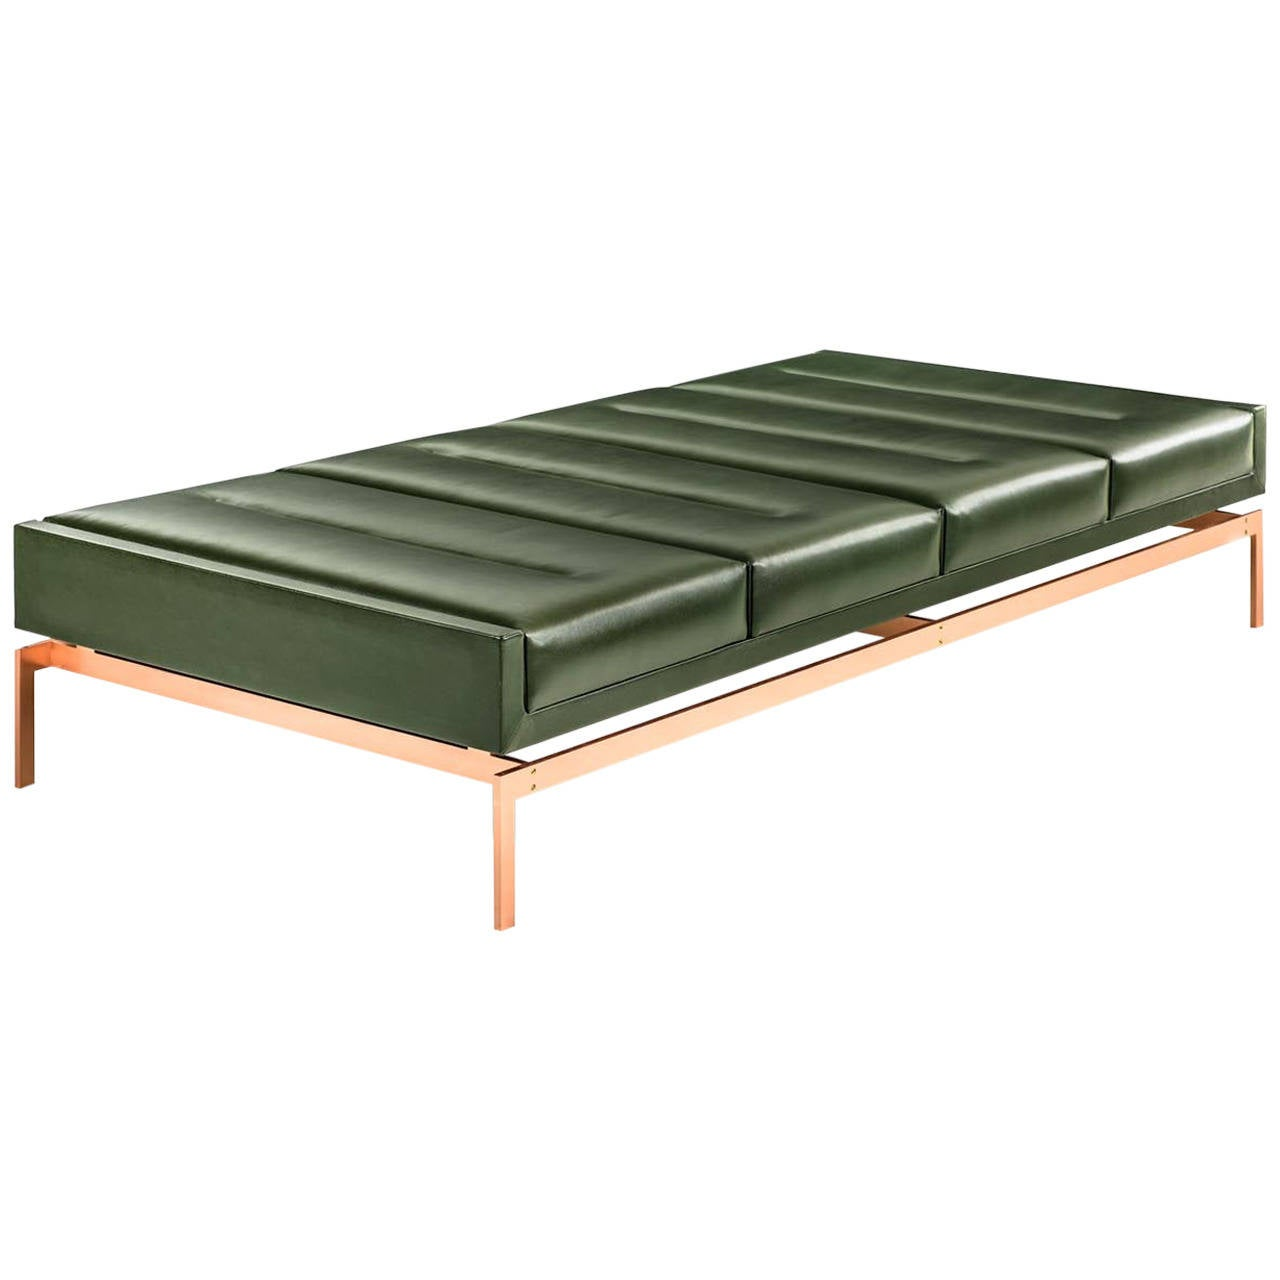 Olivera Chaise Longue Daybed Bench With Green Leather